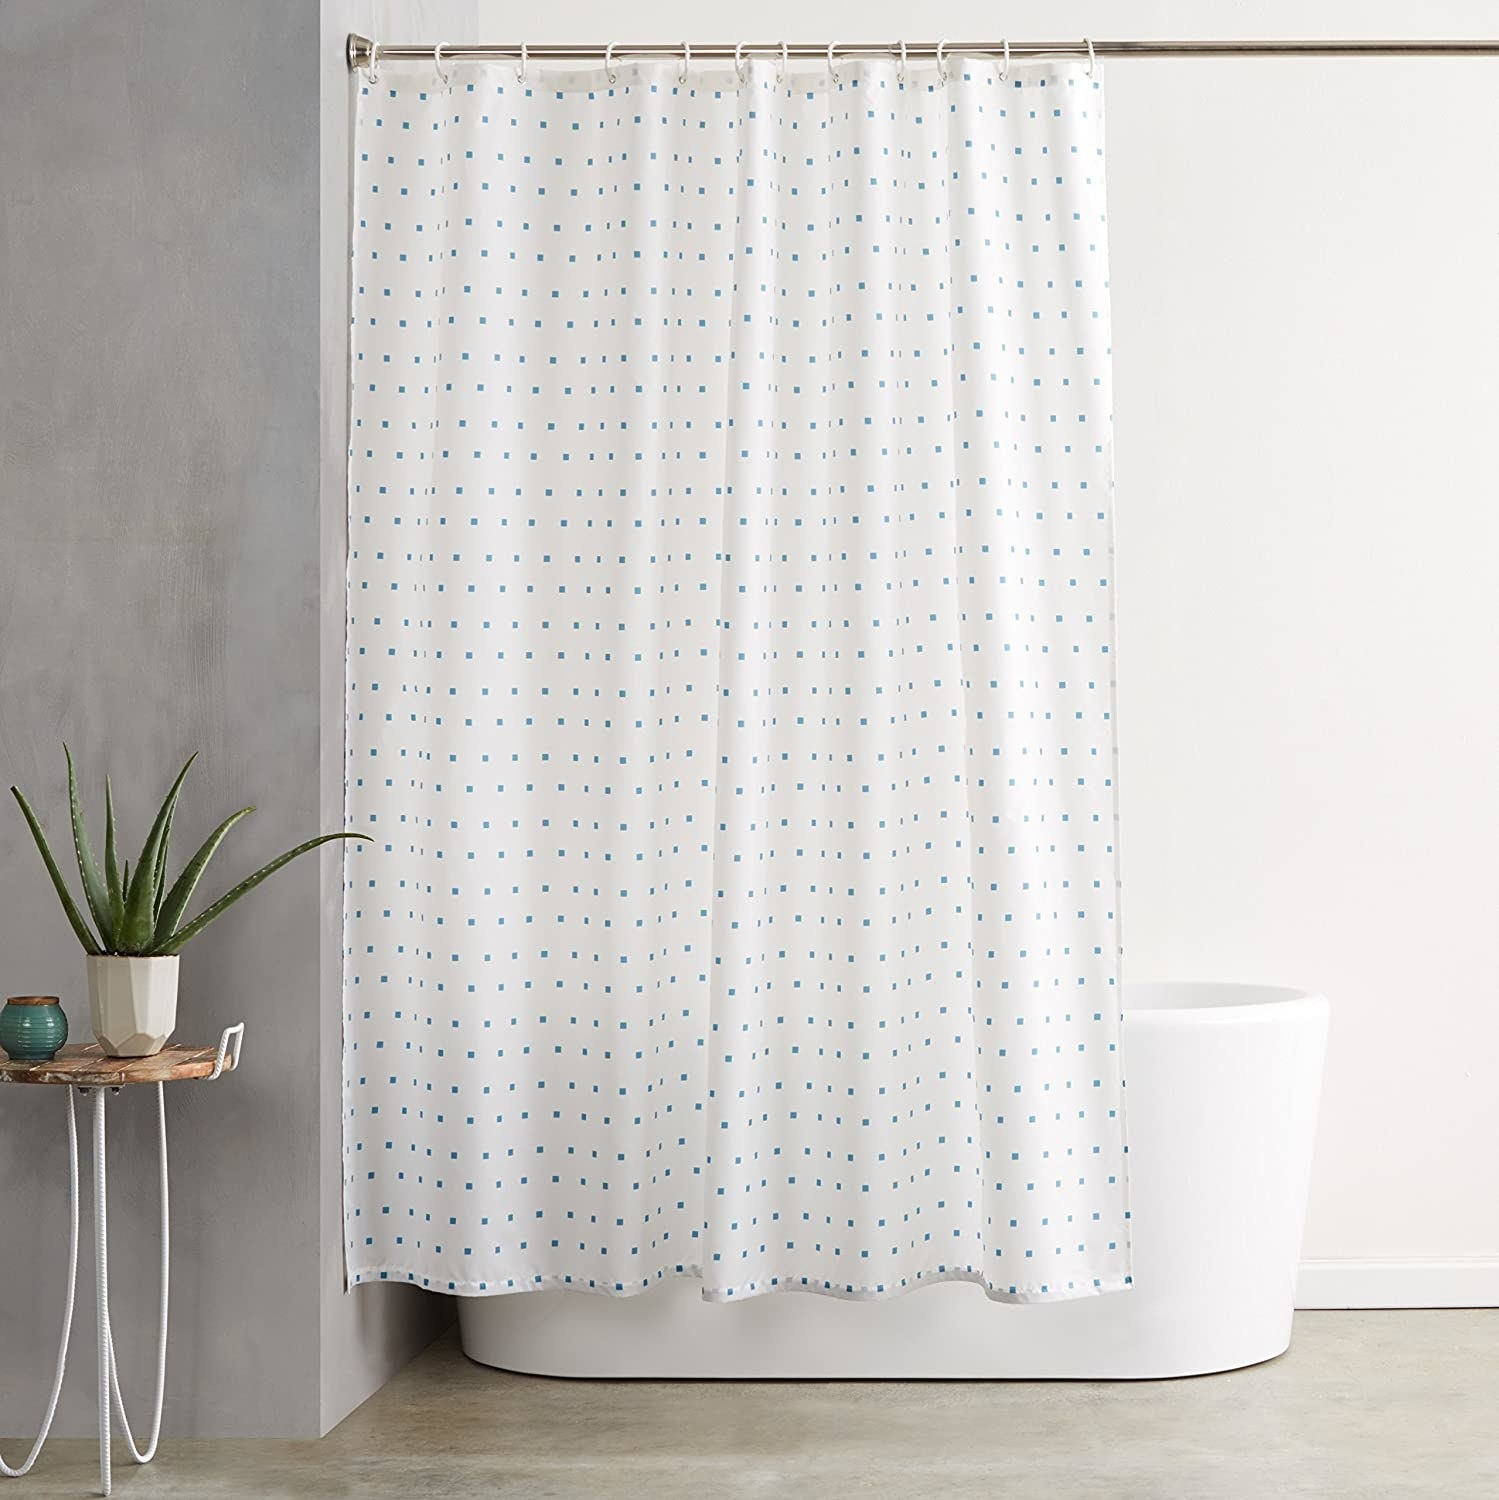 The shower curtain covering a free-standing tub